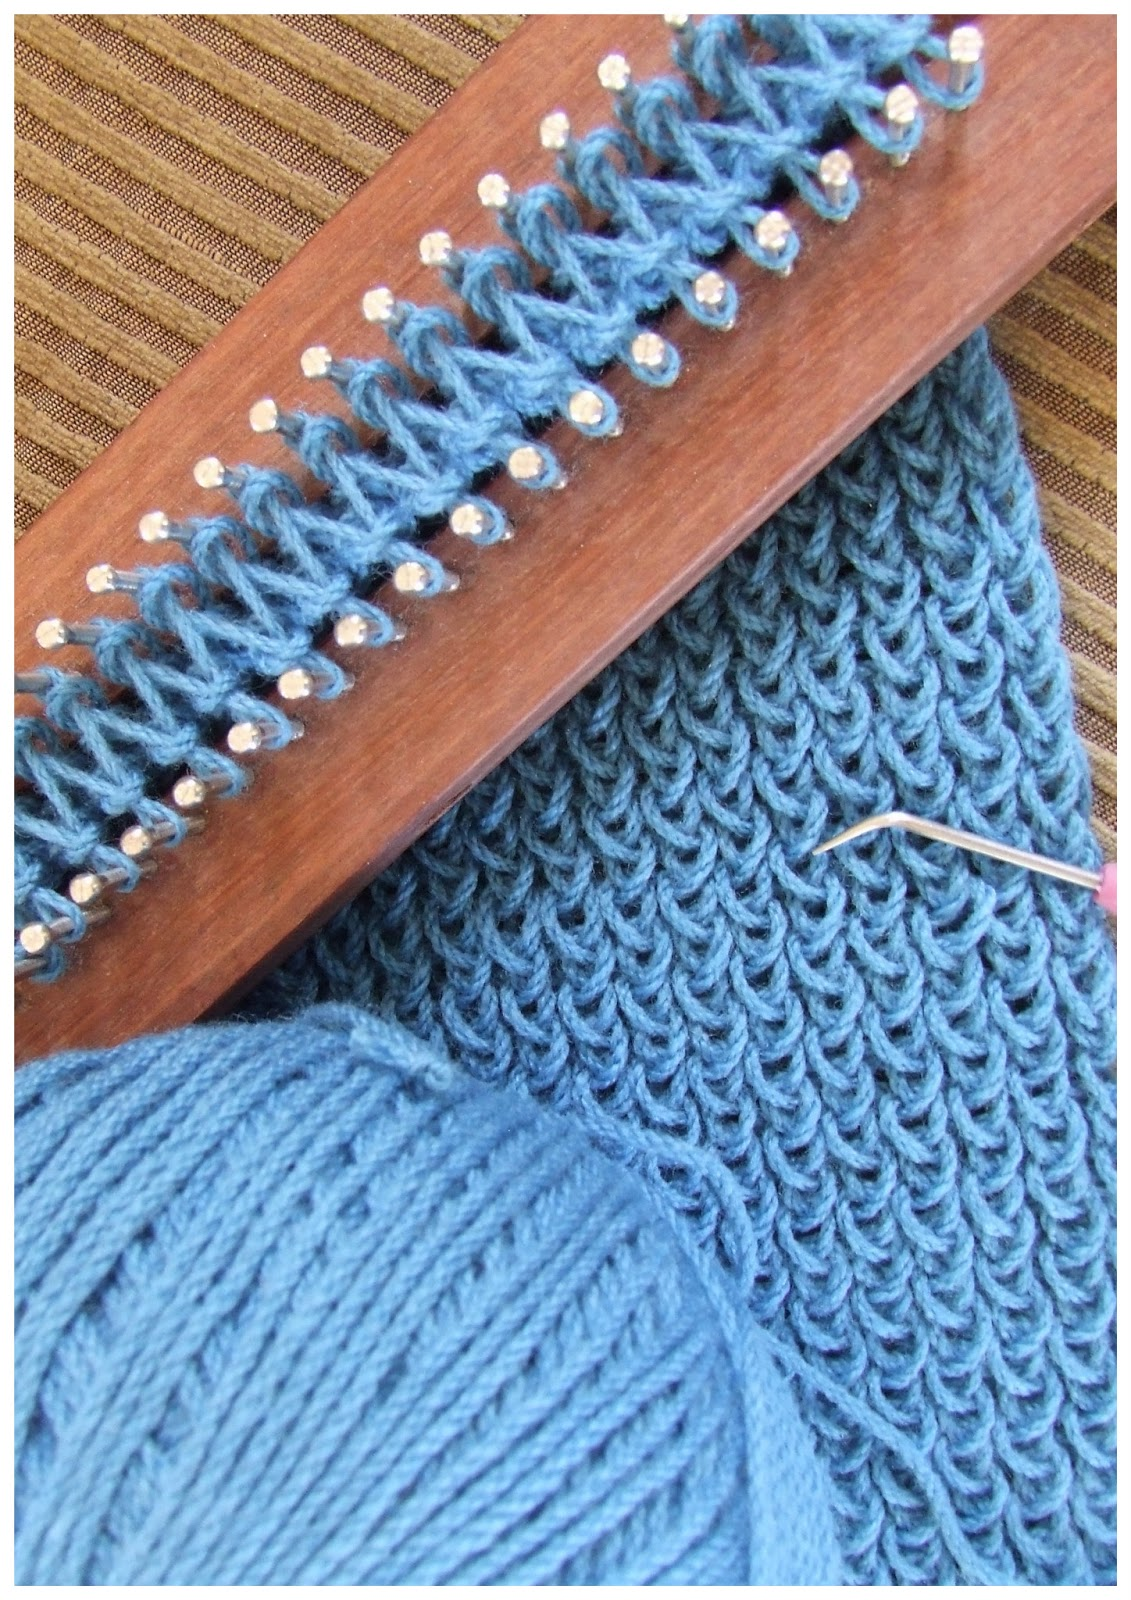 Loom Knitting Free Patterns : Fitzbirch crafts loom knitting